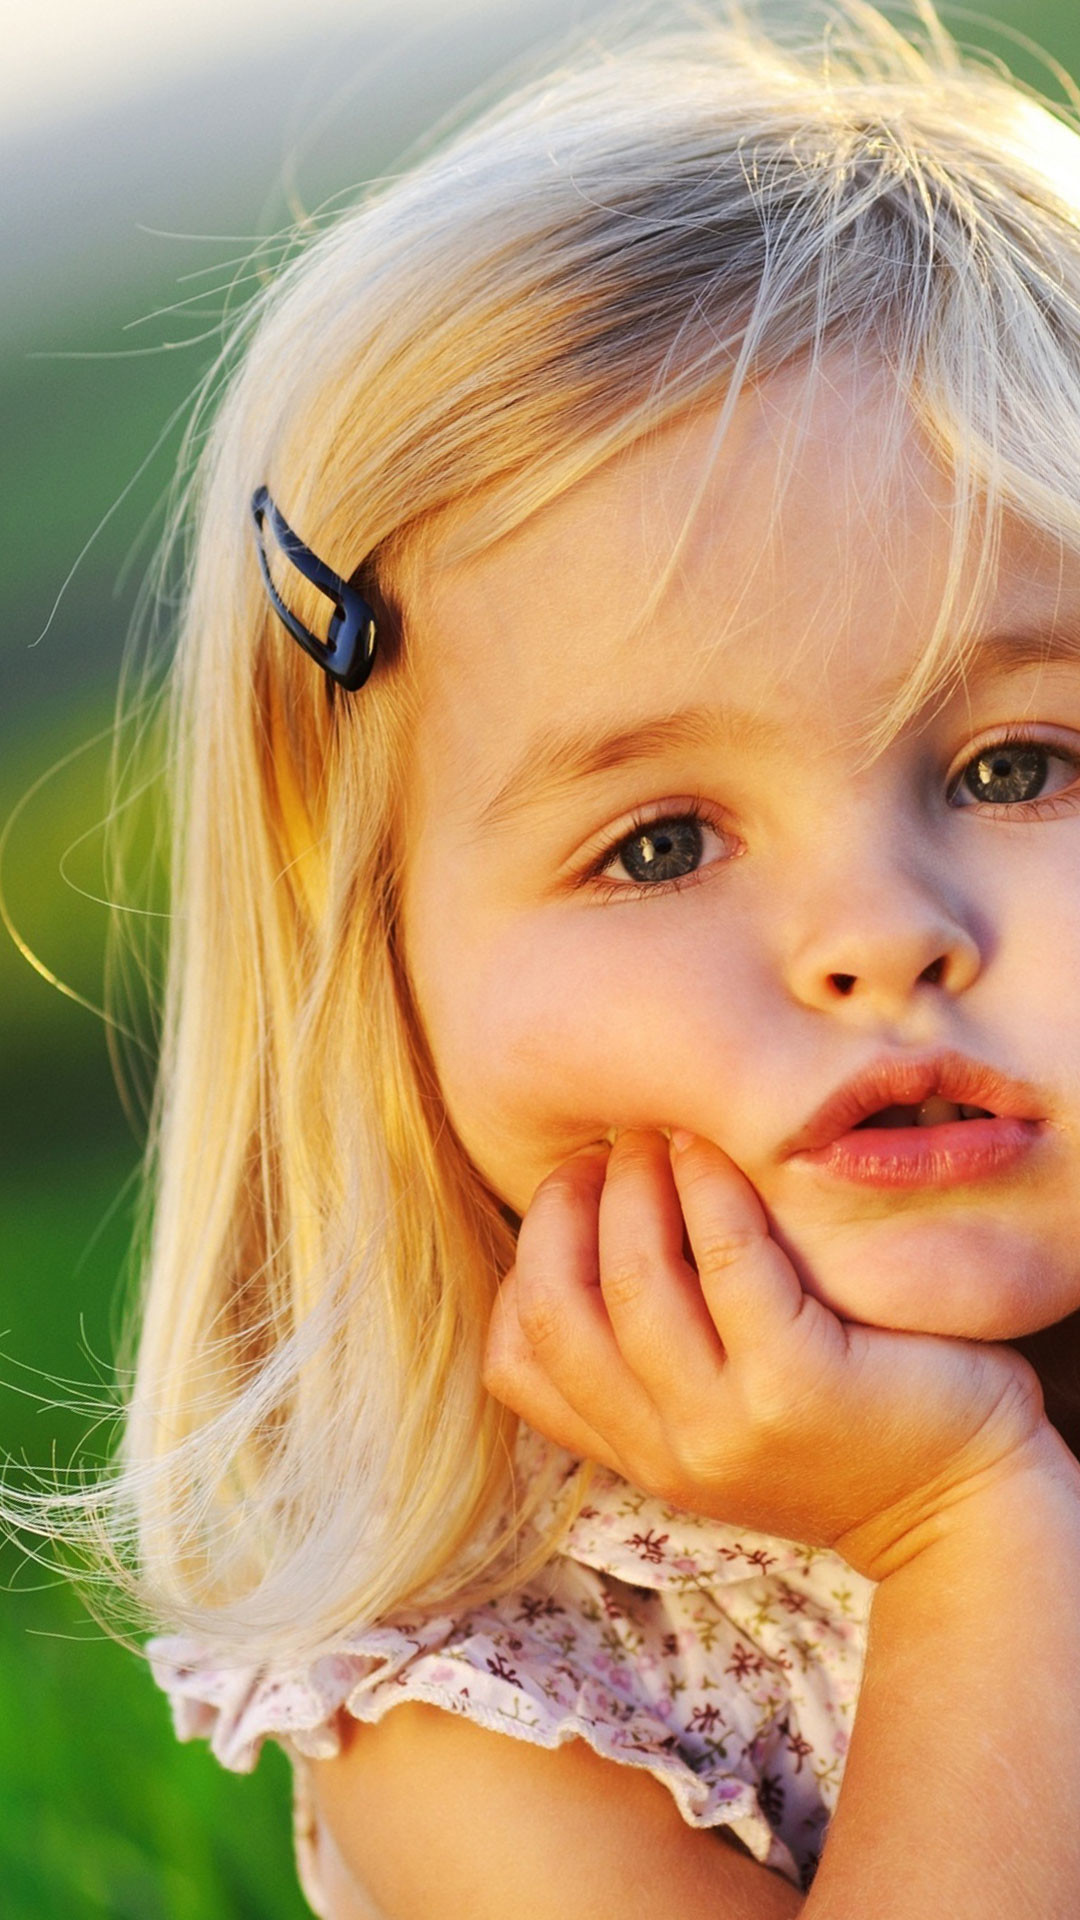 Cute Little Girl Wallpaper For Iphone 6 Plus